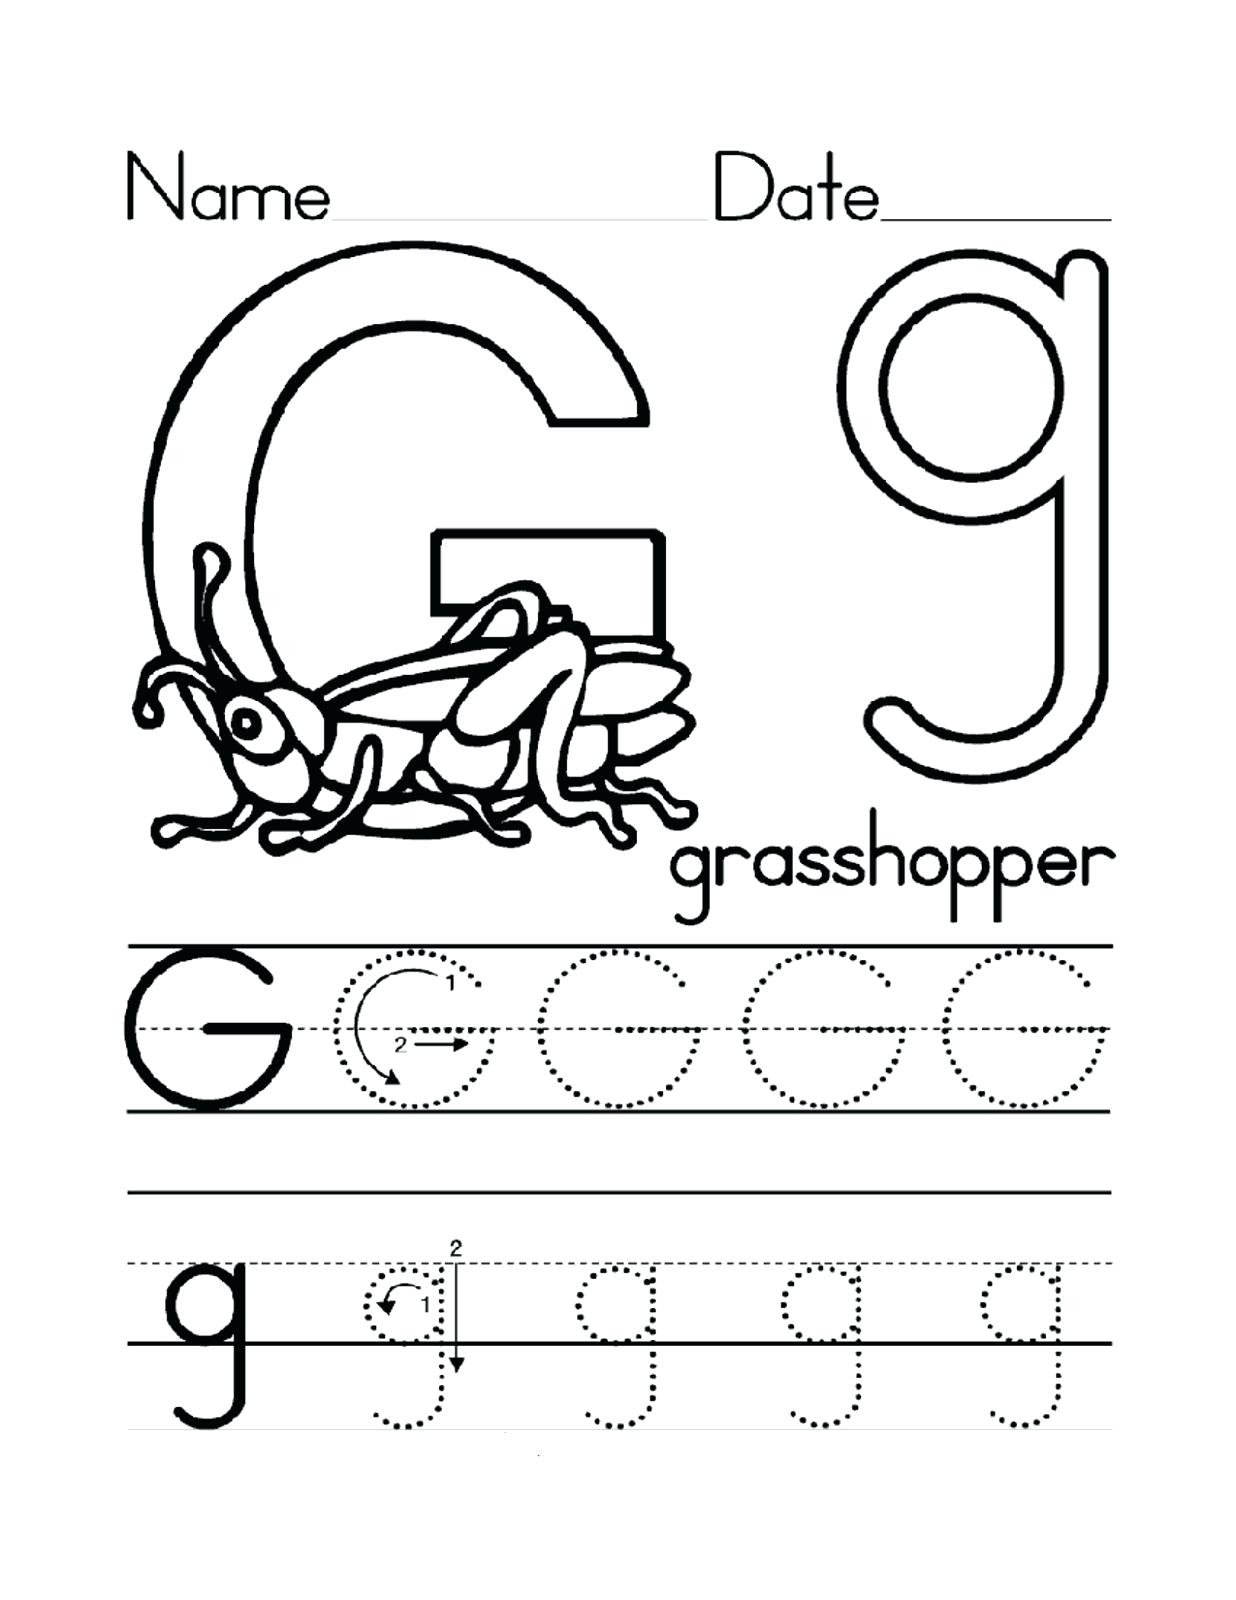 Letter G Worksheets For Preschoolers Letter G Worksheets For